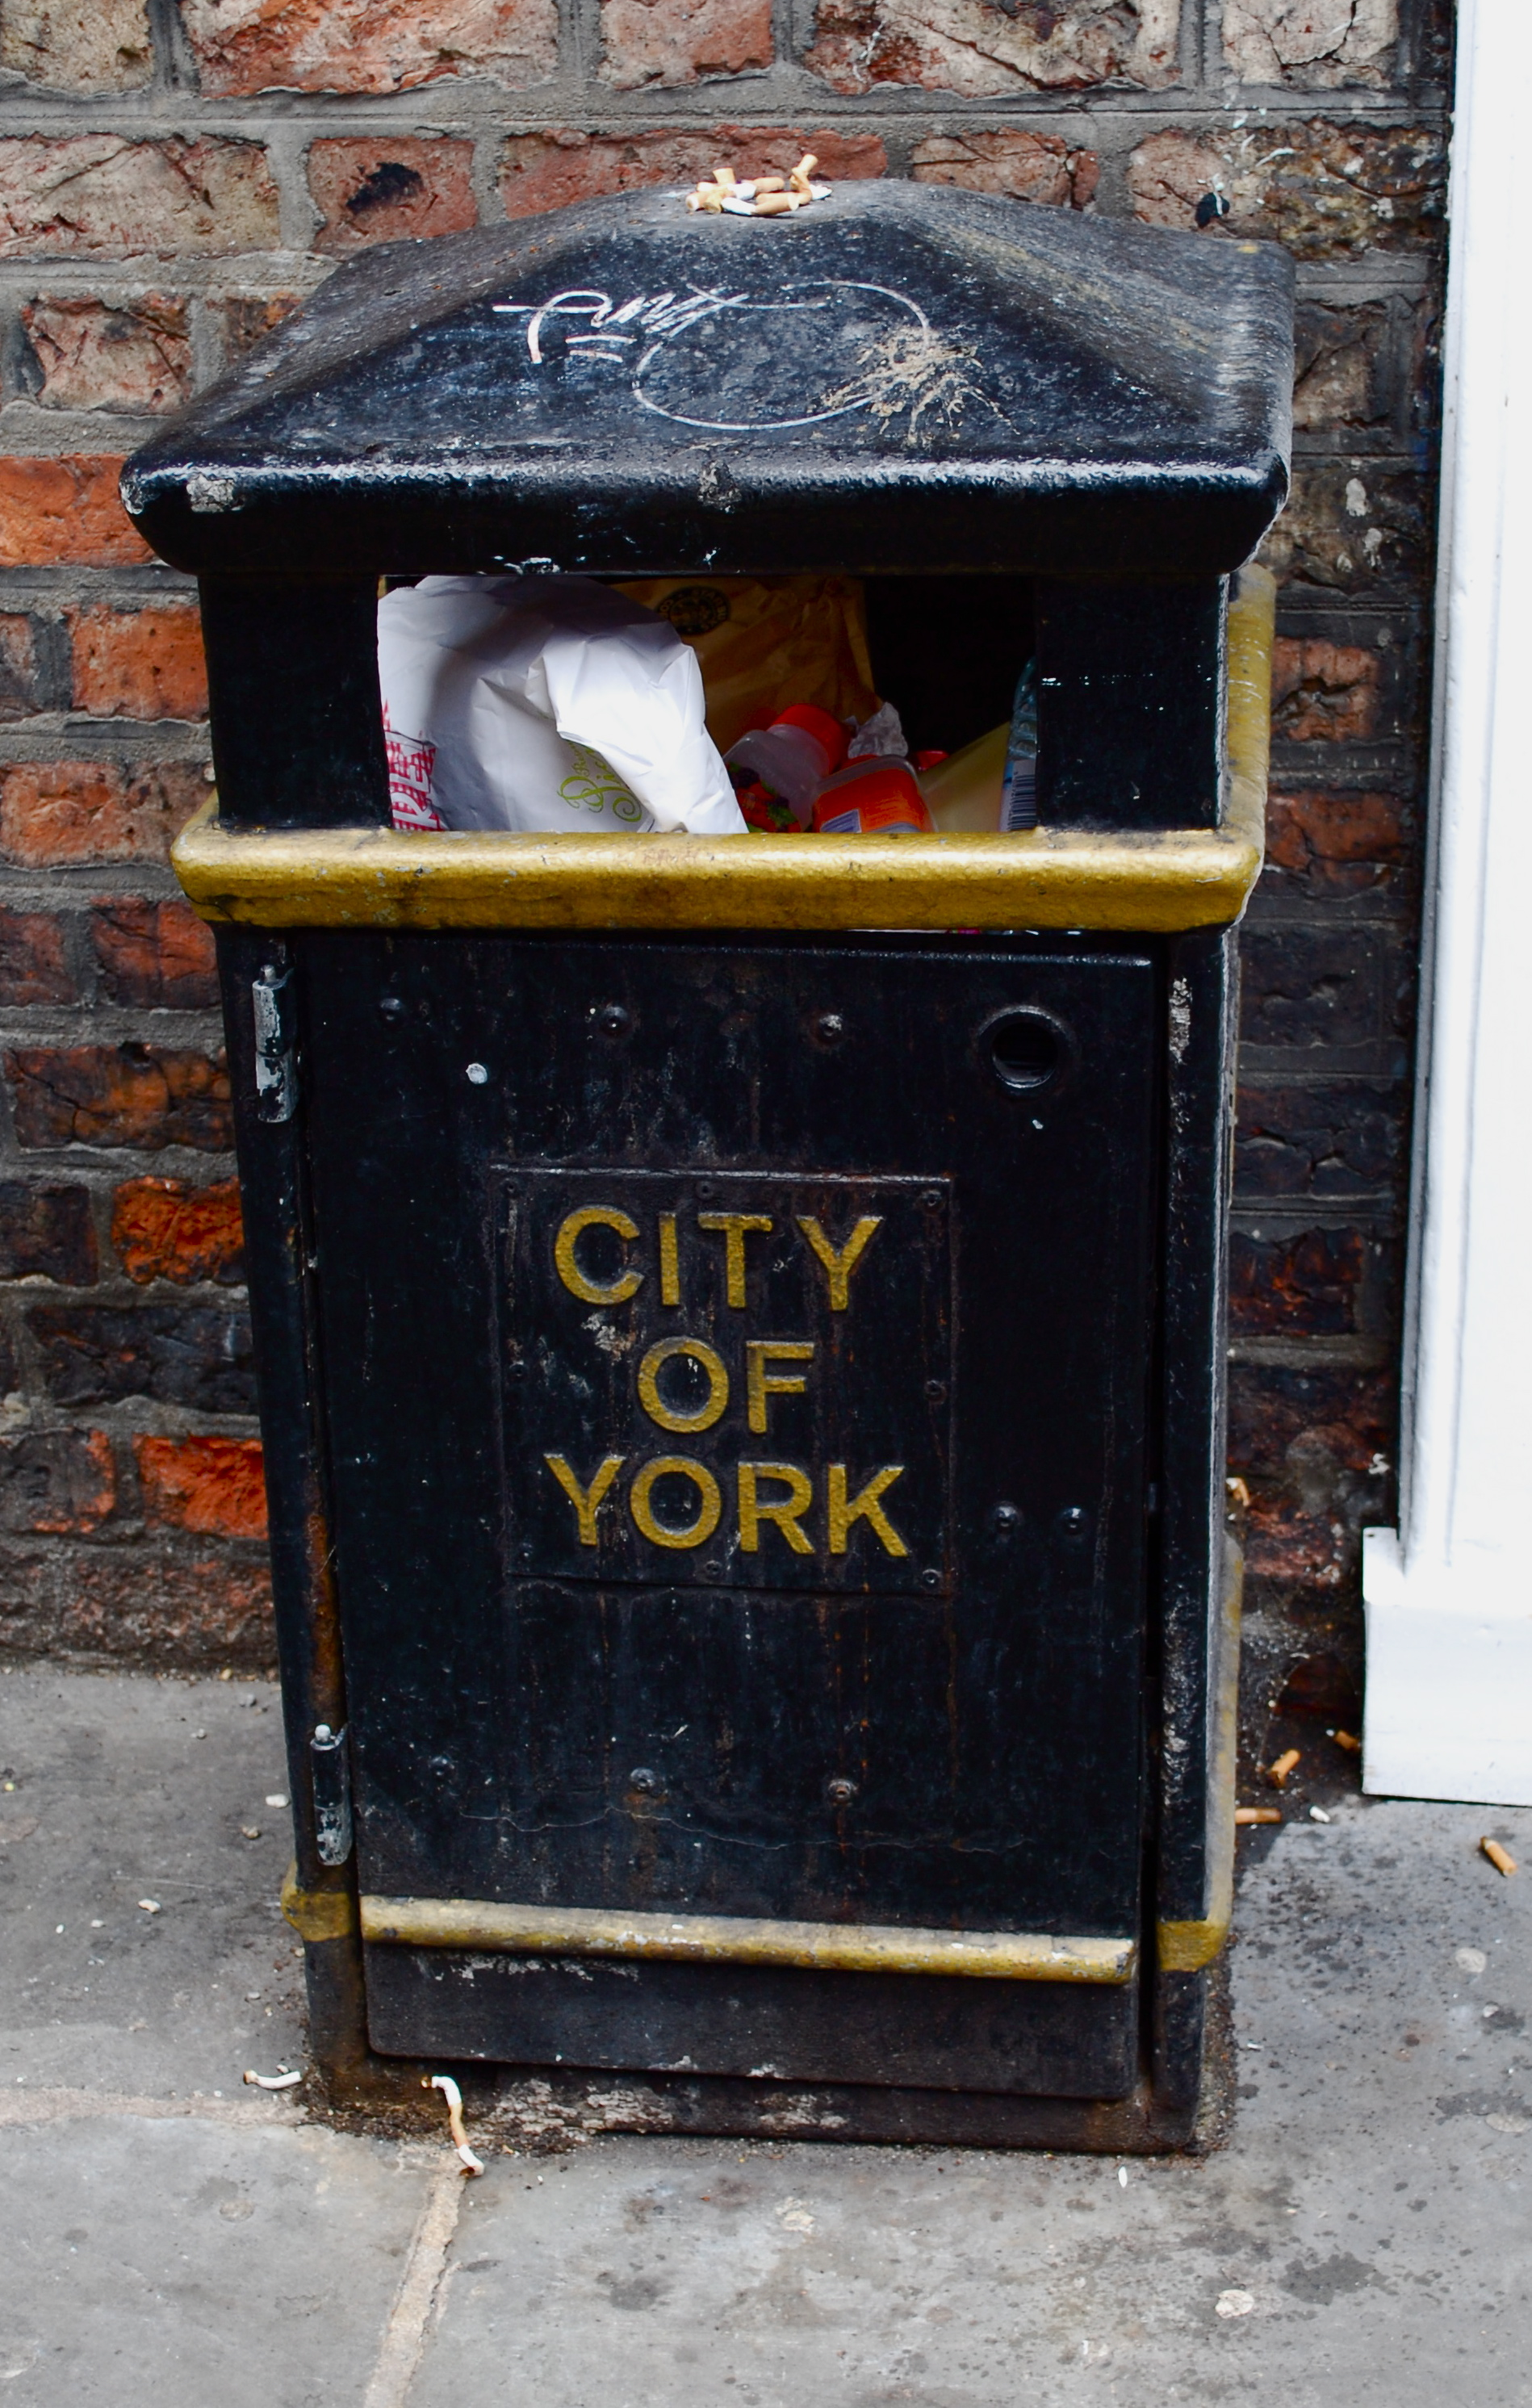 Yes, we paint our dustbins with gold, because trash is holy